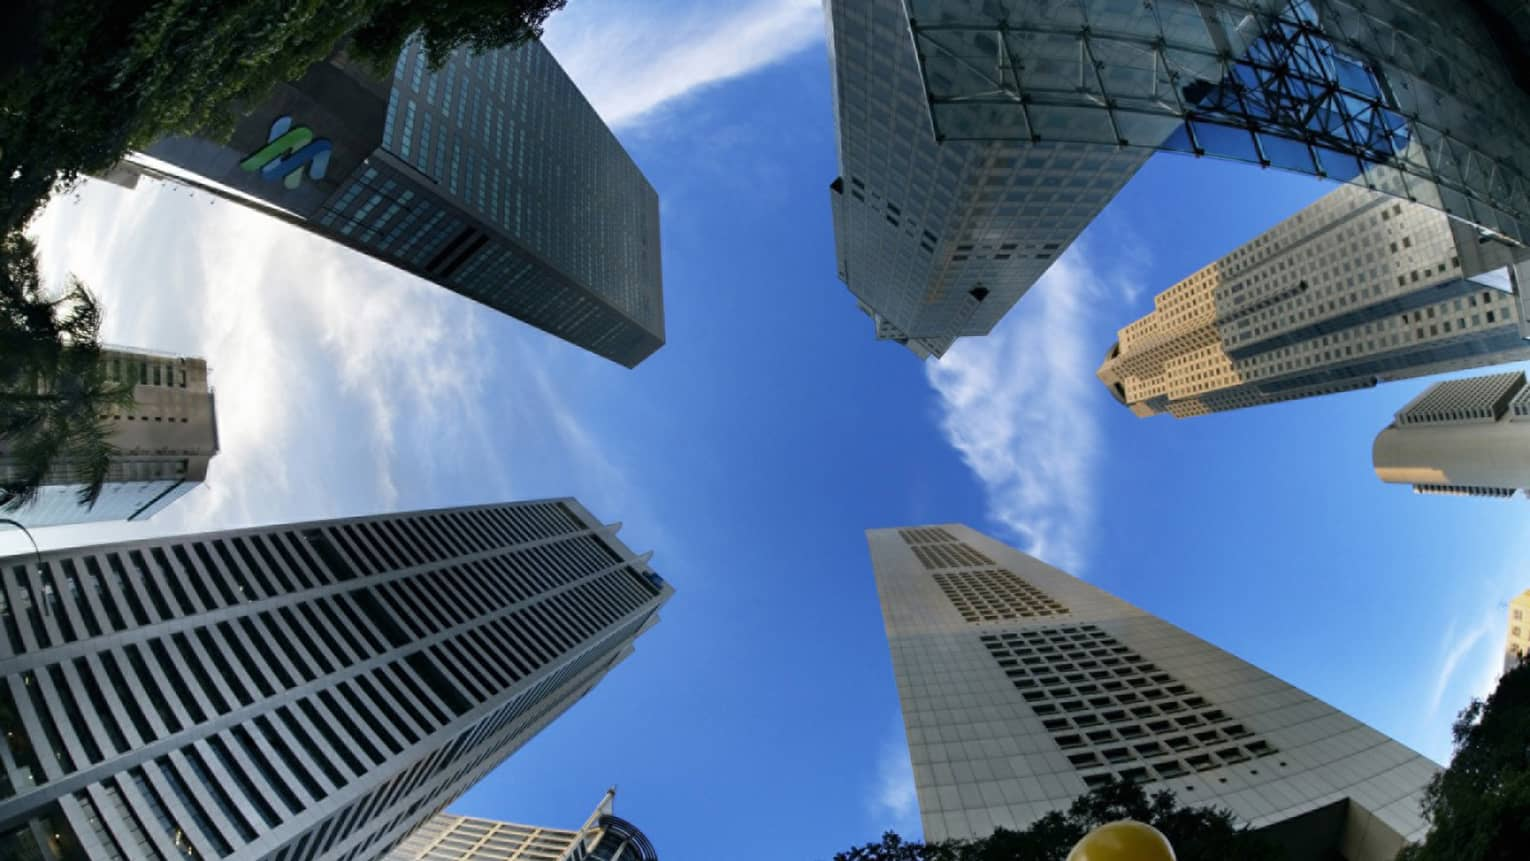 Fish-eye lens shot of skyscrapers in Singapore